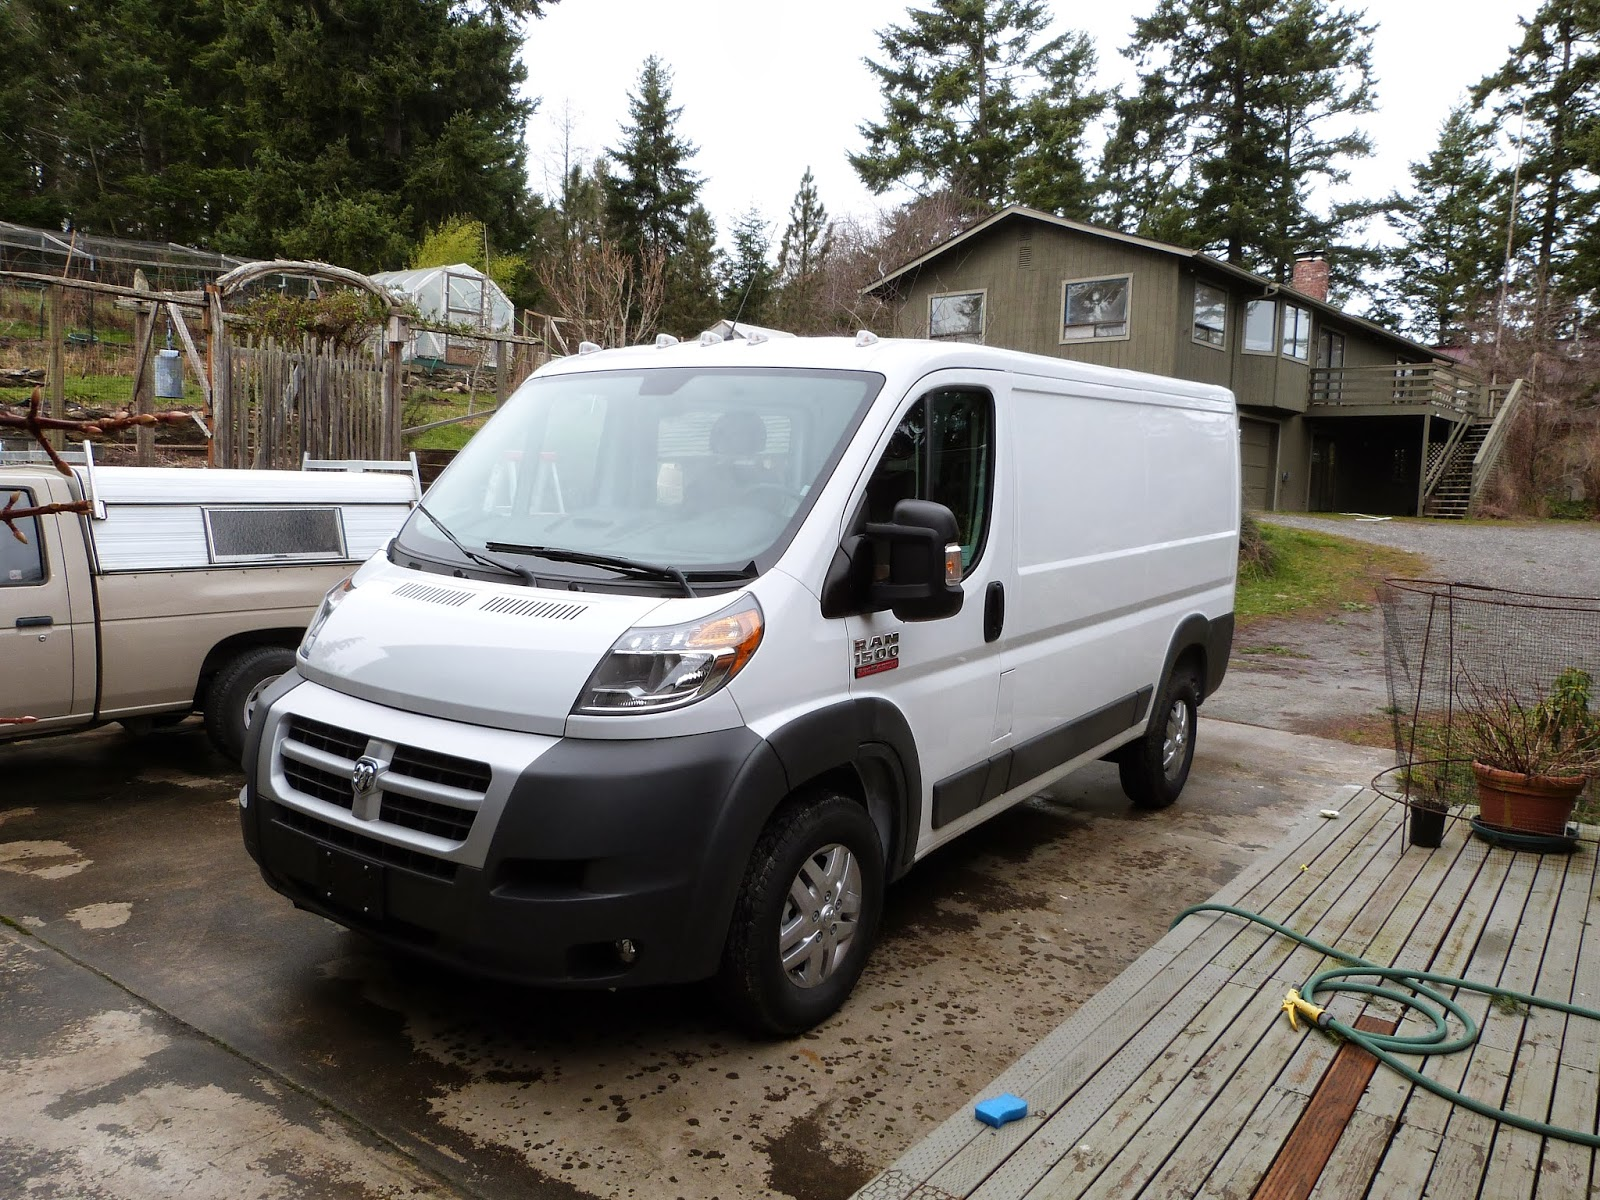 Promaster to Buster, the Camper Van: The New Van--a Promaster title=